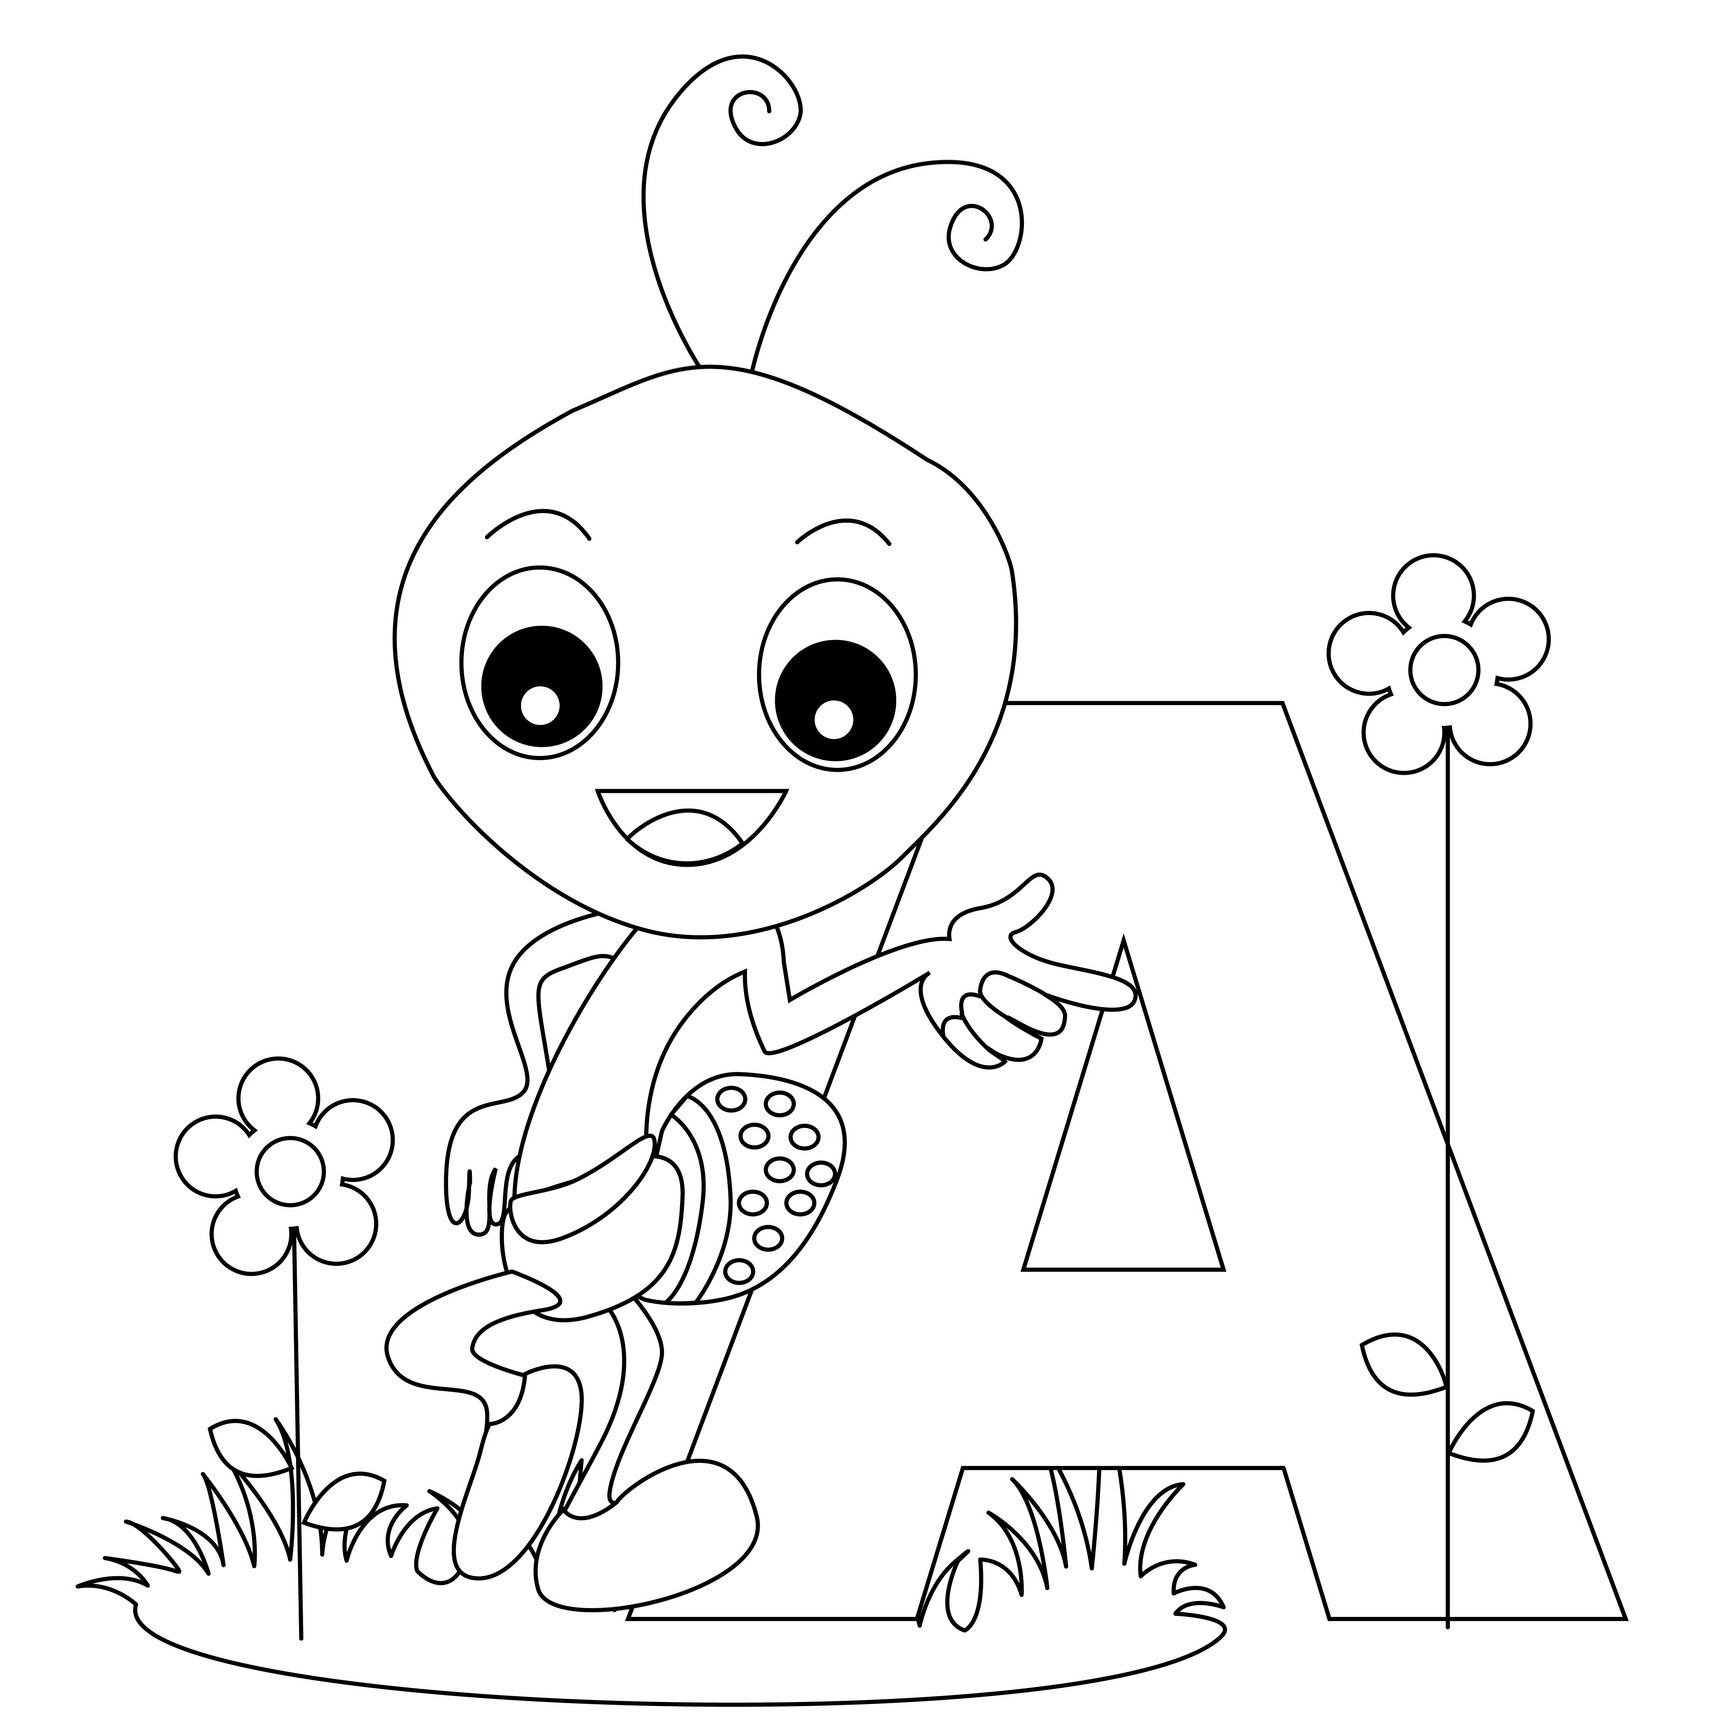 Free Printable Alphabet Coloring Pages For Kids - Best Coloring - Free Printable Alphabet Letters Coloring Pages